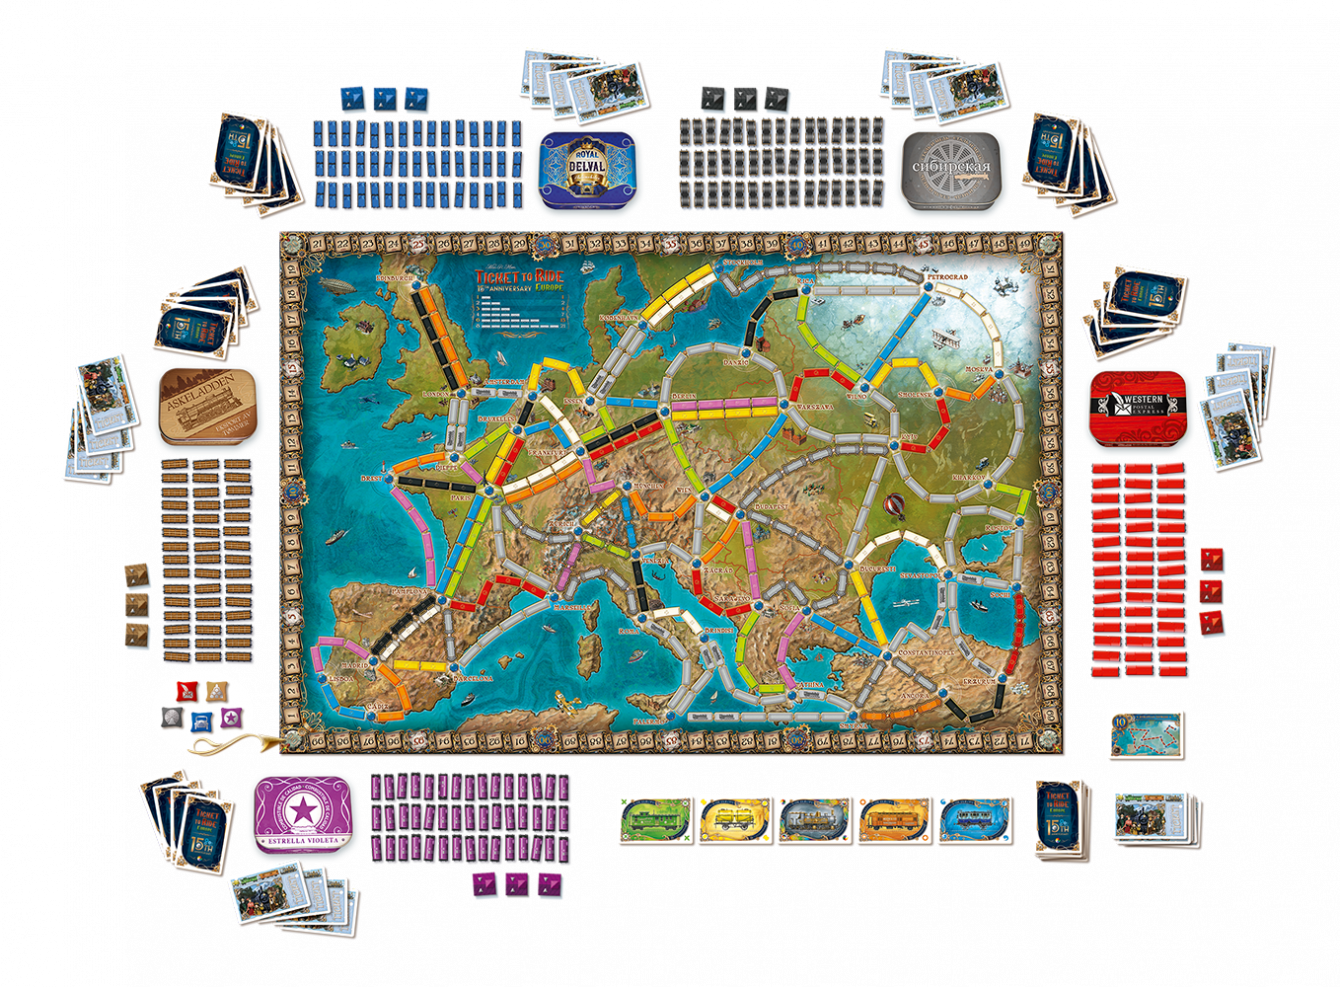 Ticket to ride set up